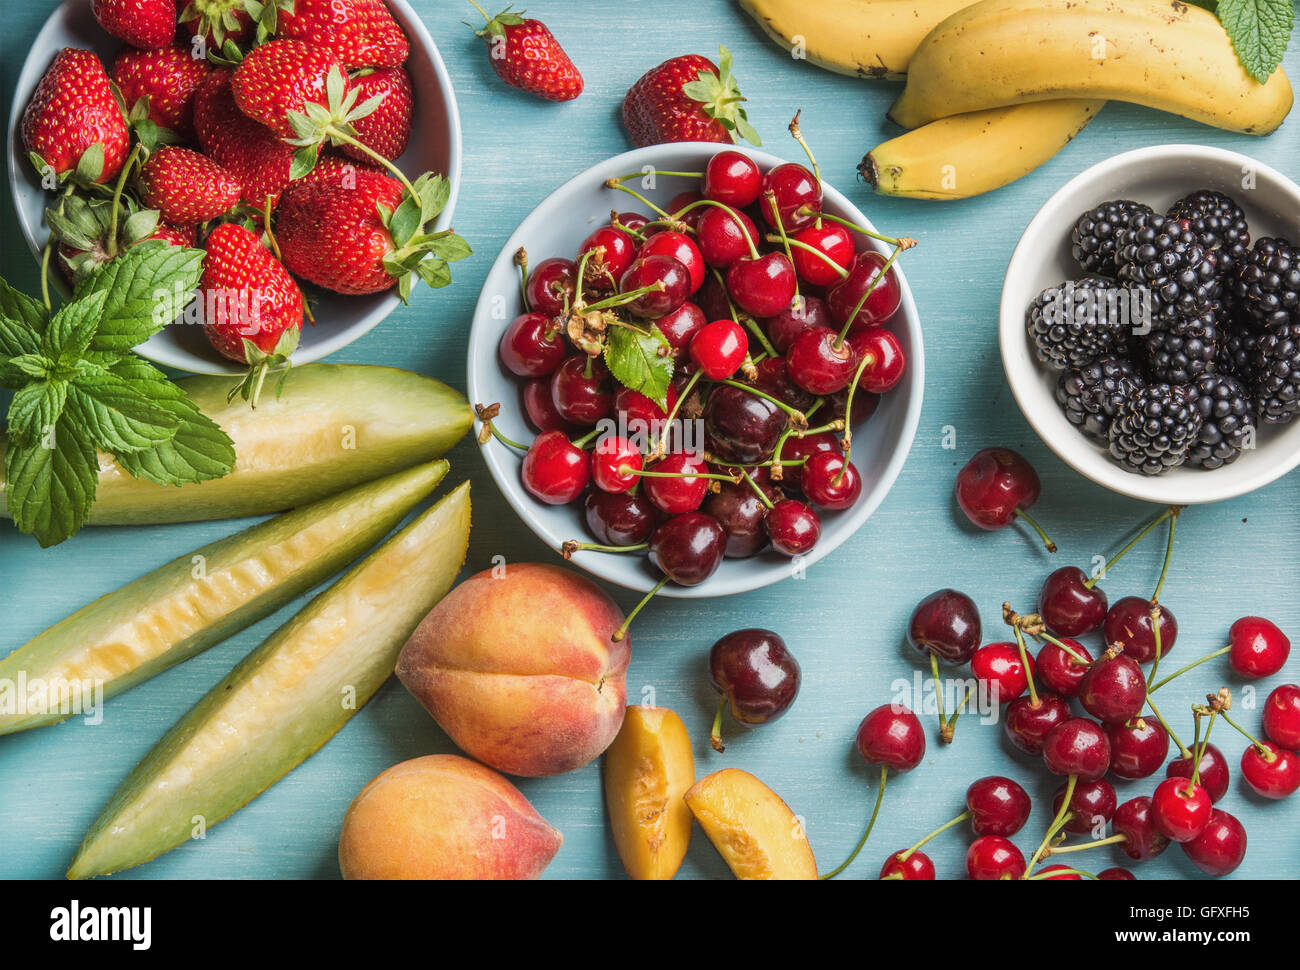 Healthy summer fruit variety on blue wooden backdrop - Stock Image